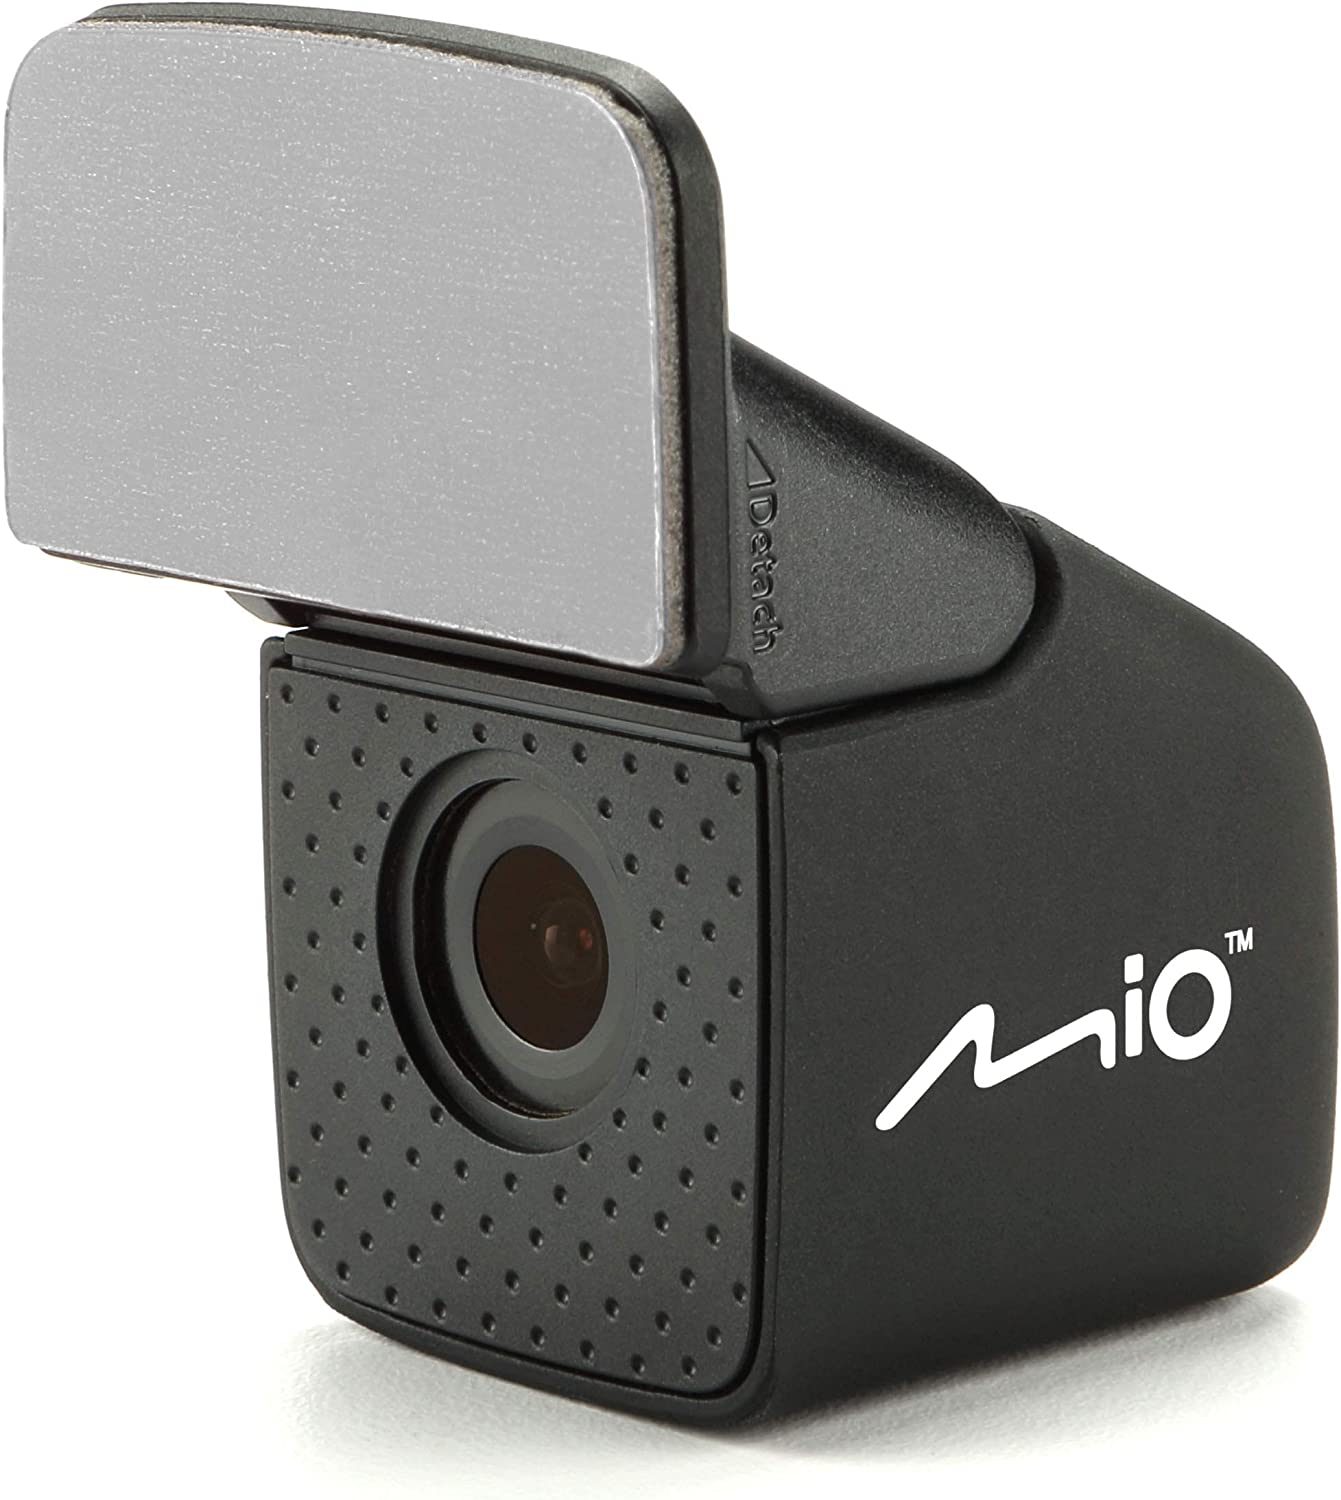 Mio MiVue A30 Rear View Camera with 140 Degree Wide Angle View